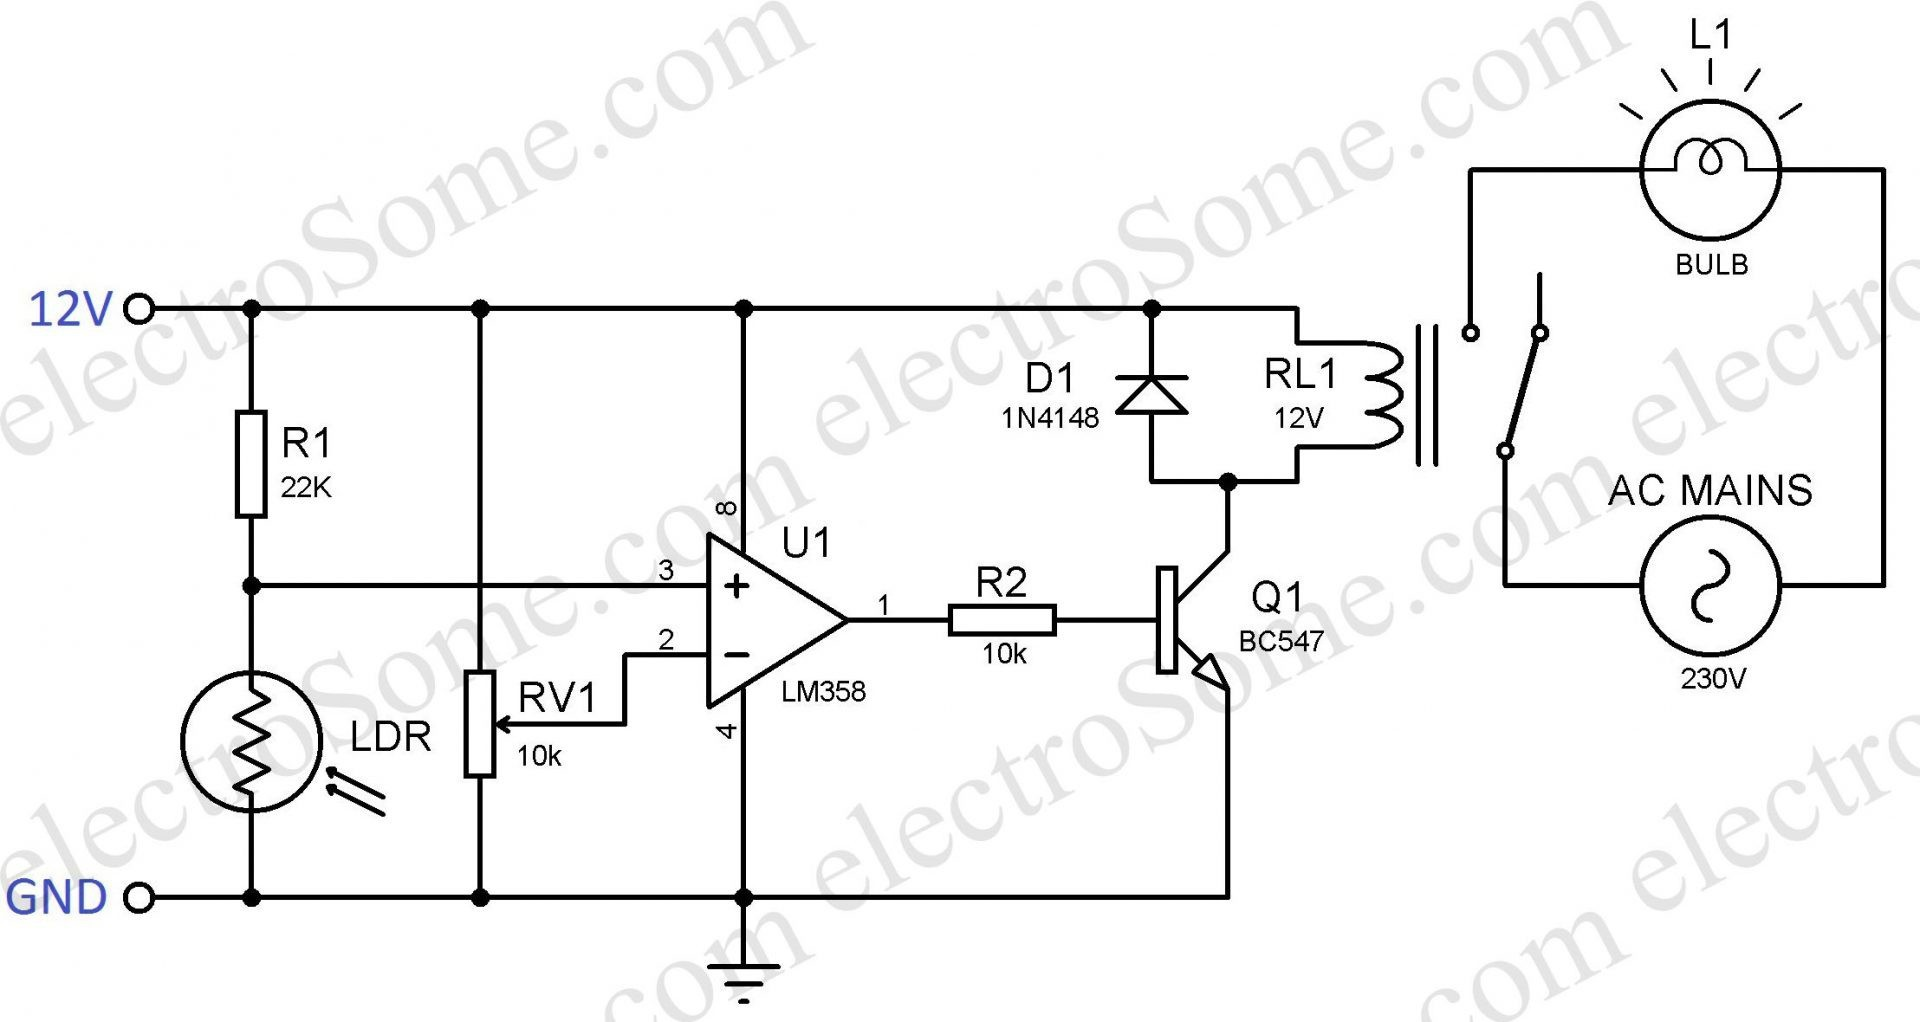 Diagram Circuit Lamp Wiring Fluorescent Picturesque Www Fixture Elegant Light Luxury Wiringgram Lighting Socket Bulb Touch Sensor Fog With